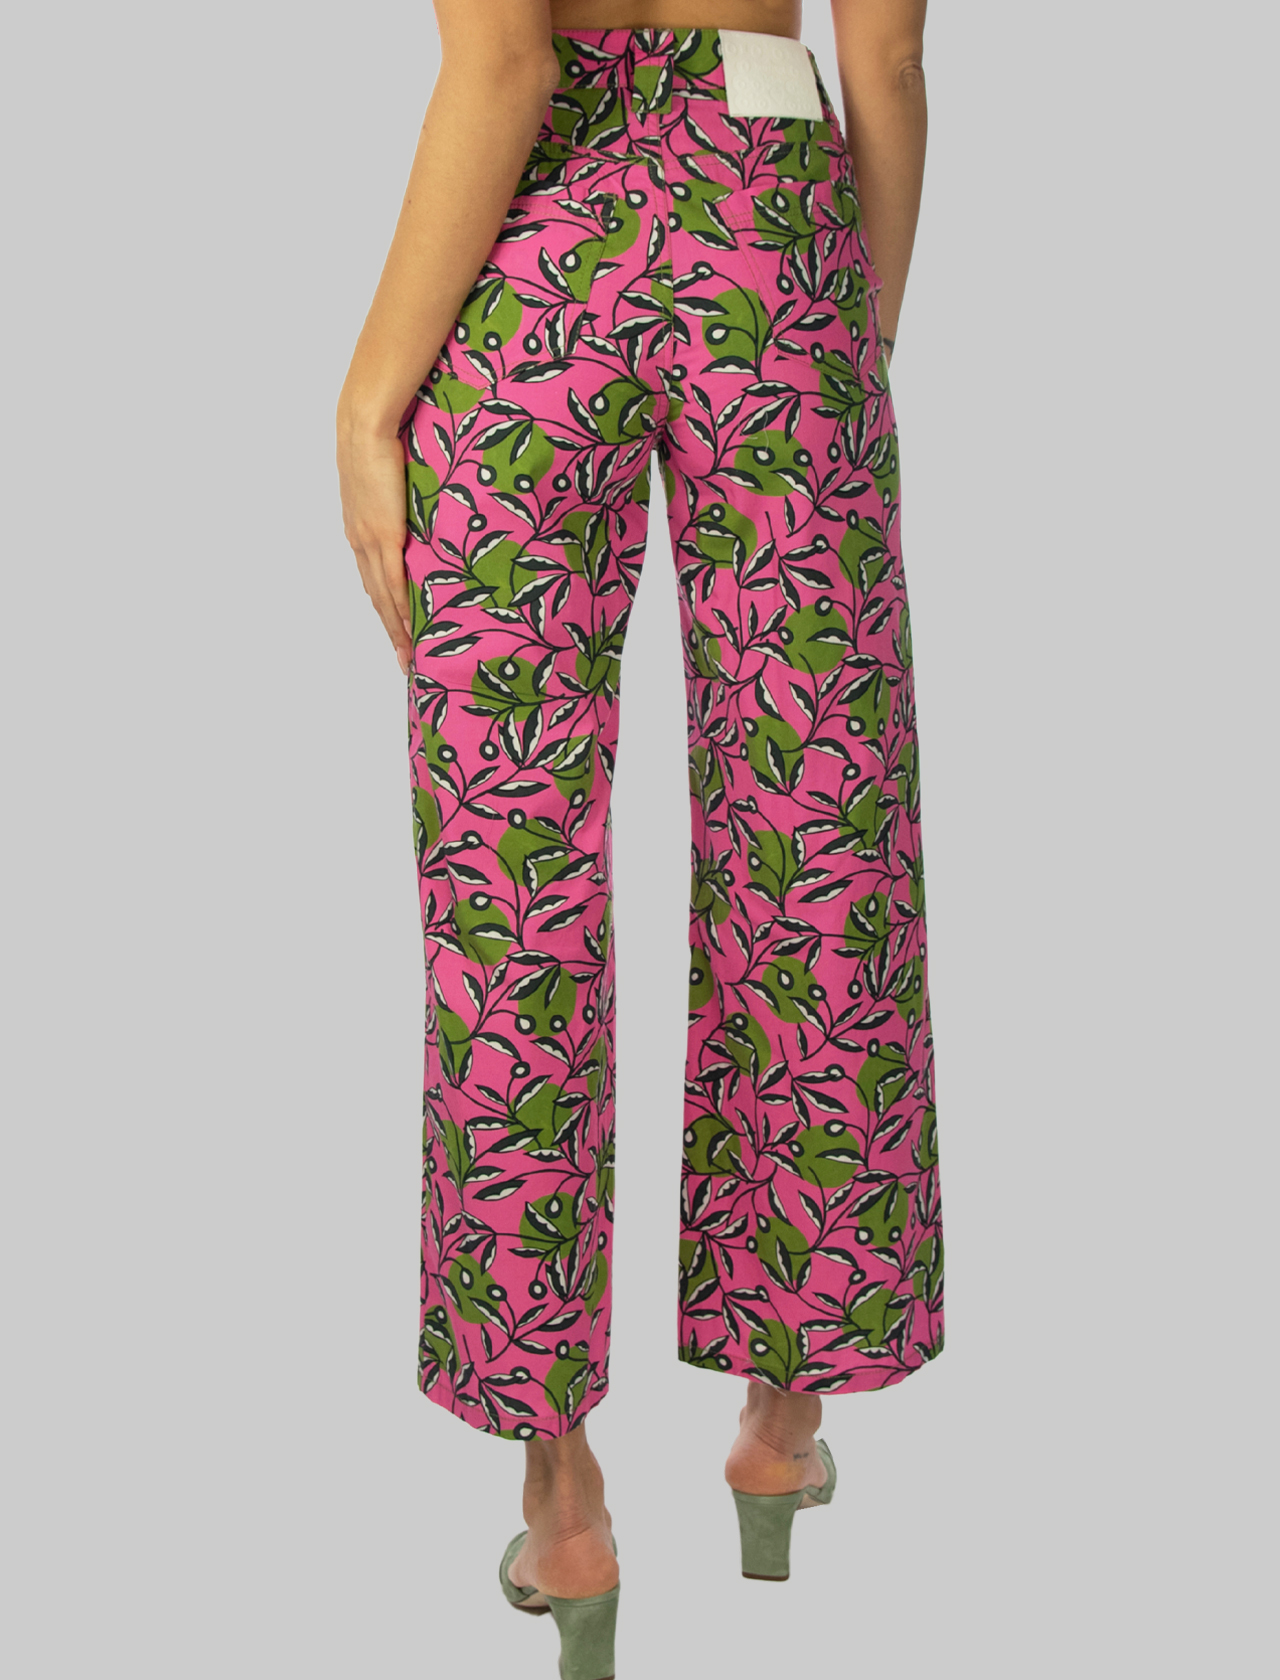 Women's Clothing Poplin Dotty Ramage Pants in Pink and Green Cotton Maliparmi | Skirts and Pants | JH746110138B3222